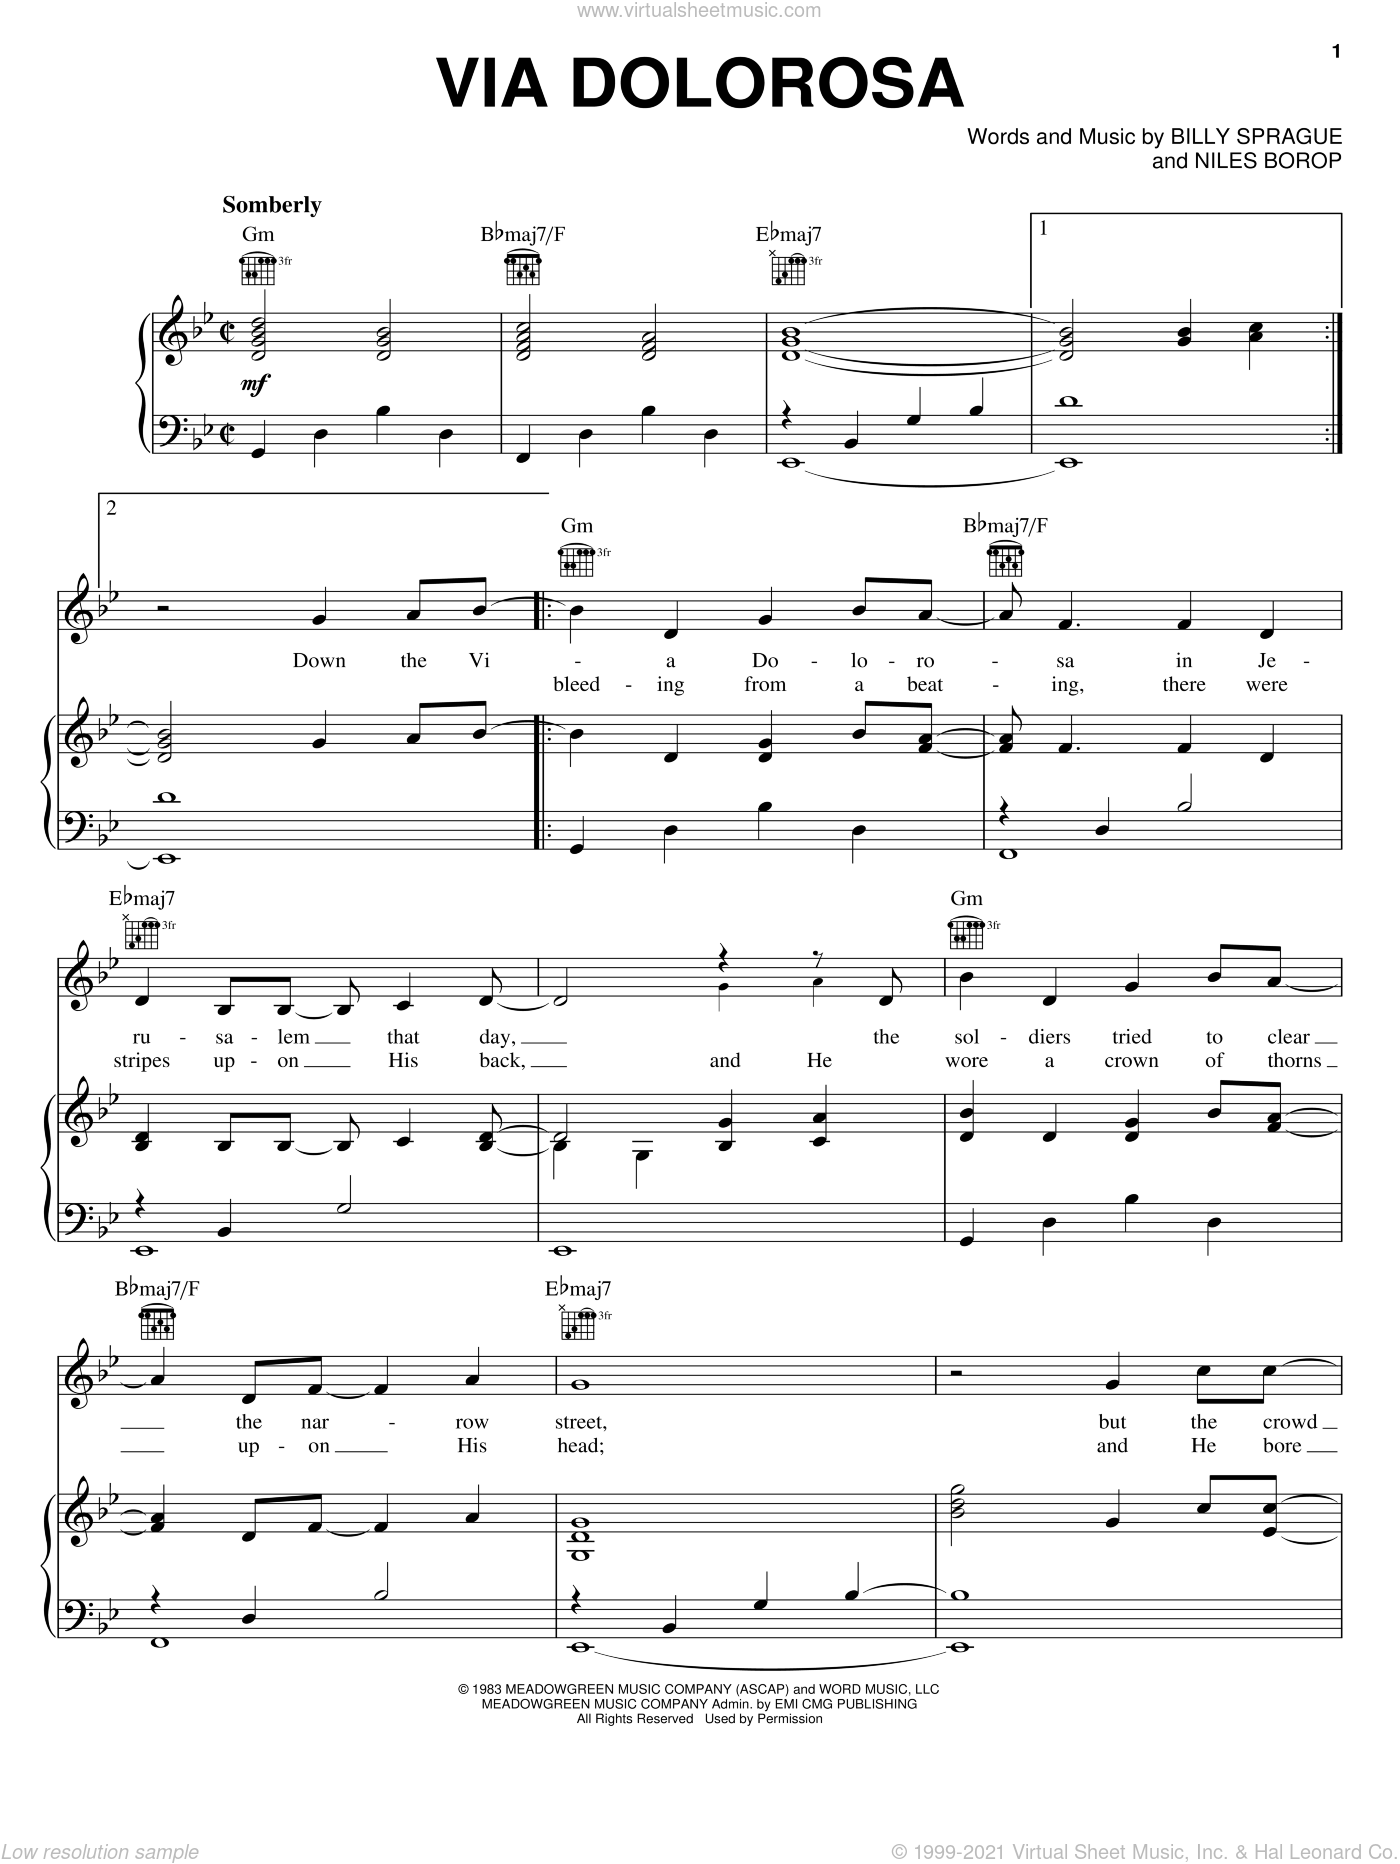 Via Dolorosa sheet music for voice, piano or guitar by Sandi Patty, Billy Sprague and Niles Borop, intermediate skill level